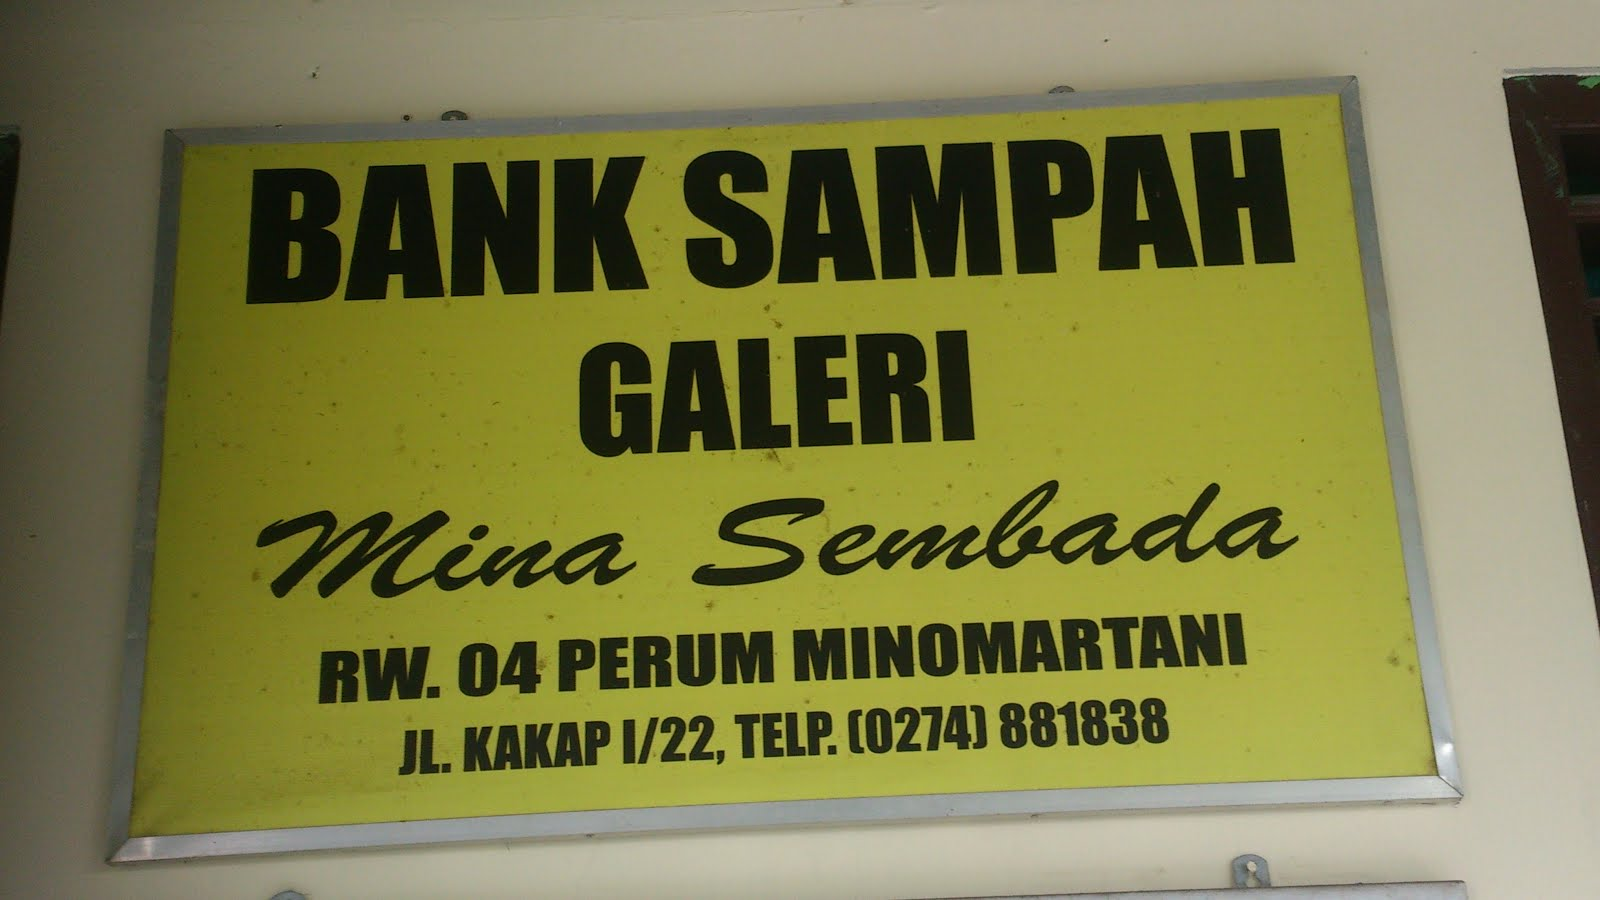 BANK SAMPAH GALERI